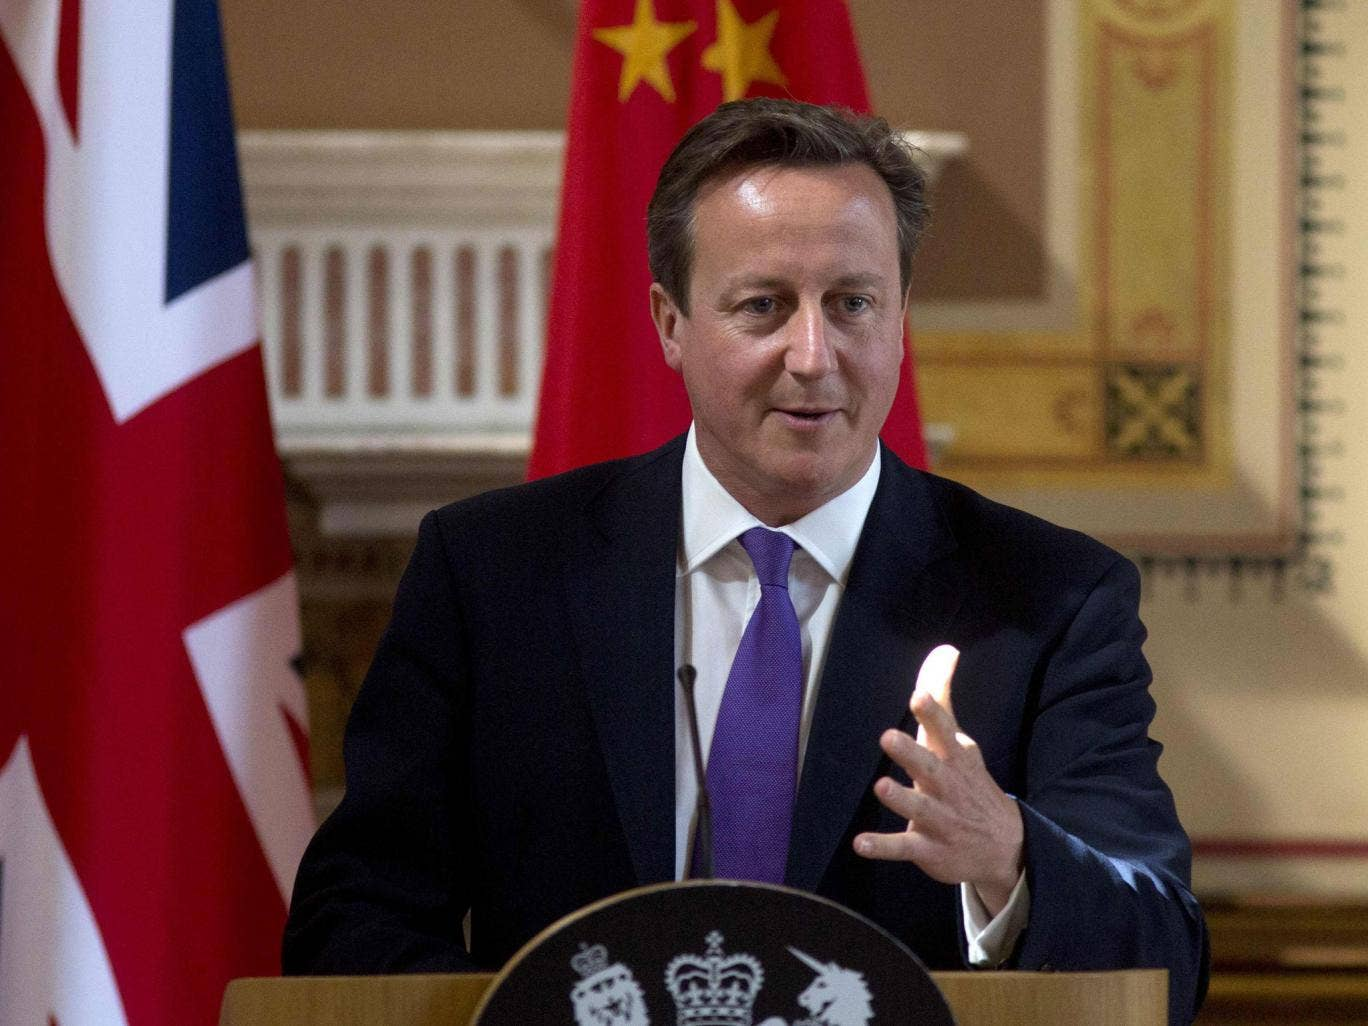 Prime Minister David Cameron speaks during a news conference in London 17 June, 2014